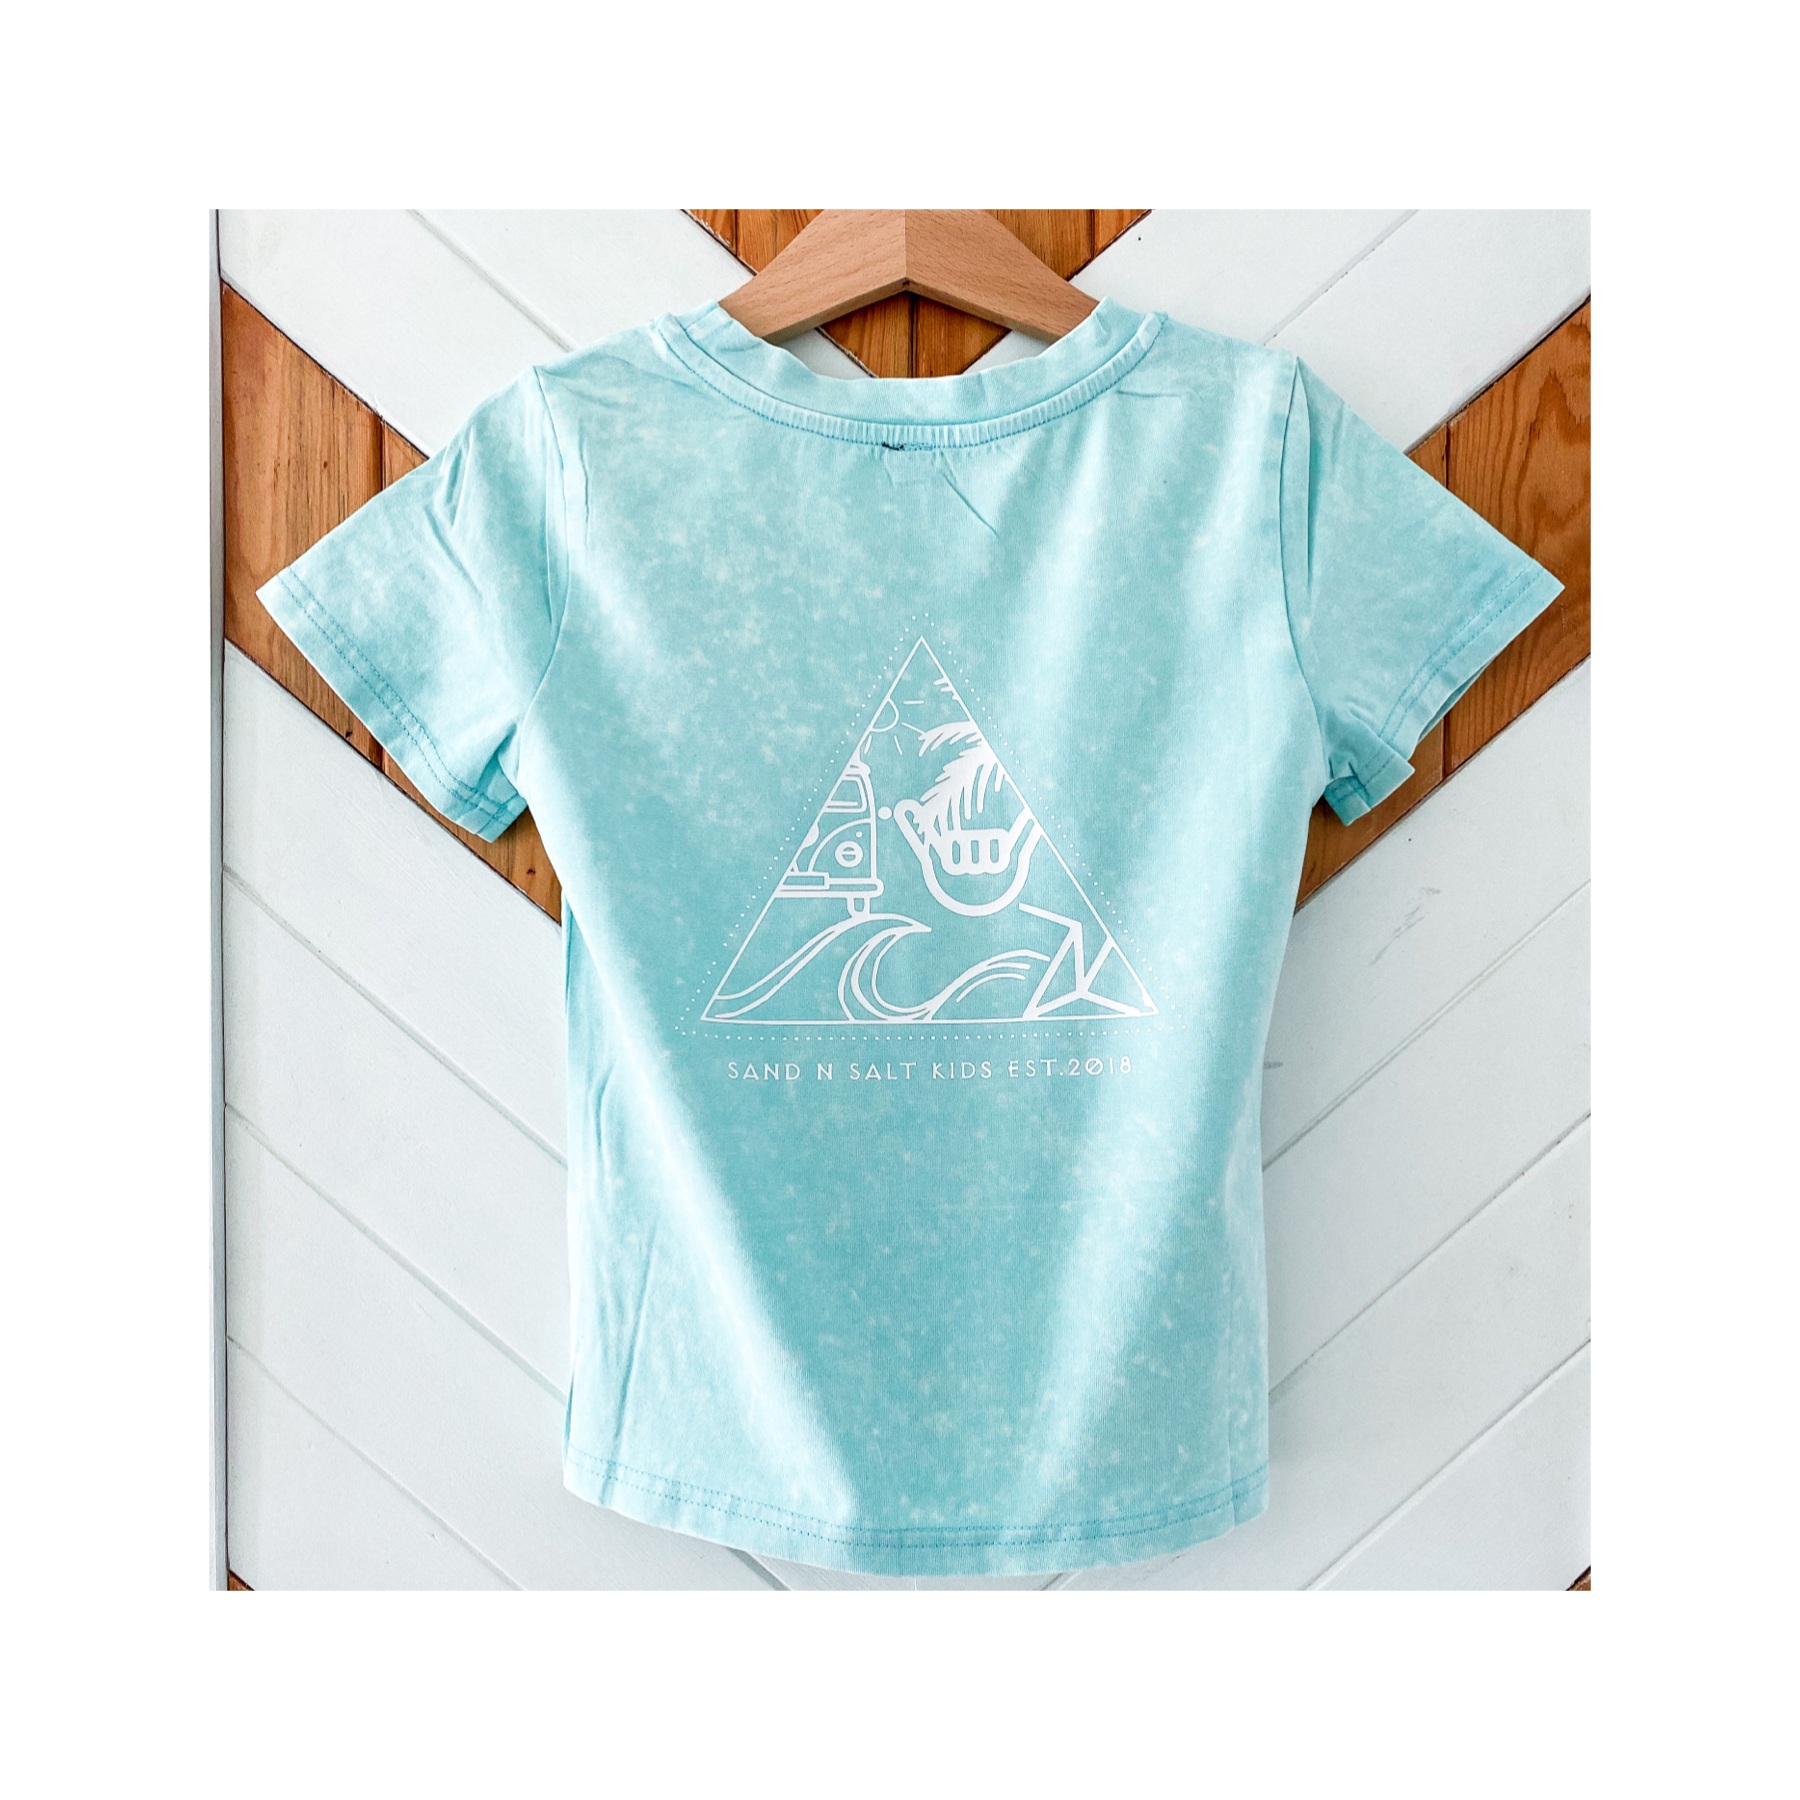 STAY'N SALTY Aqua vintage wash tee